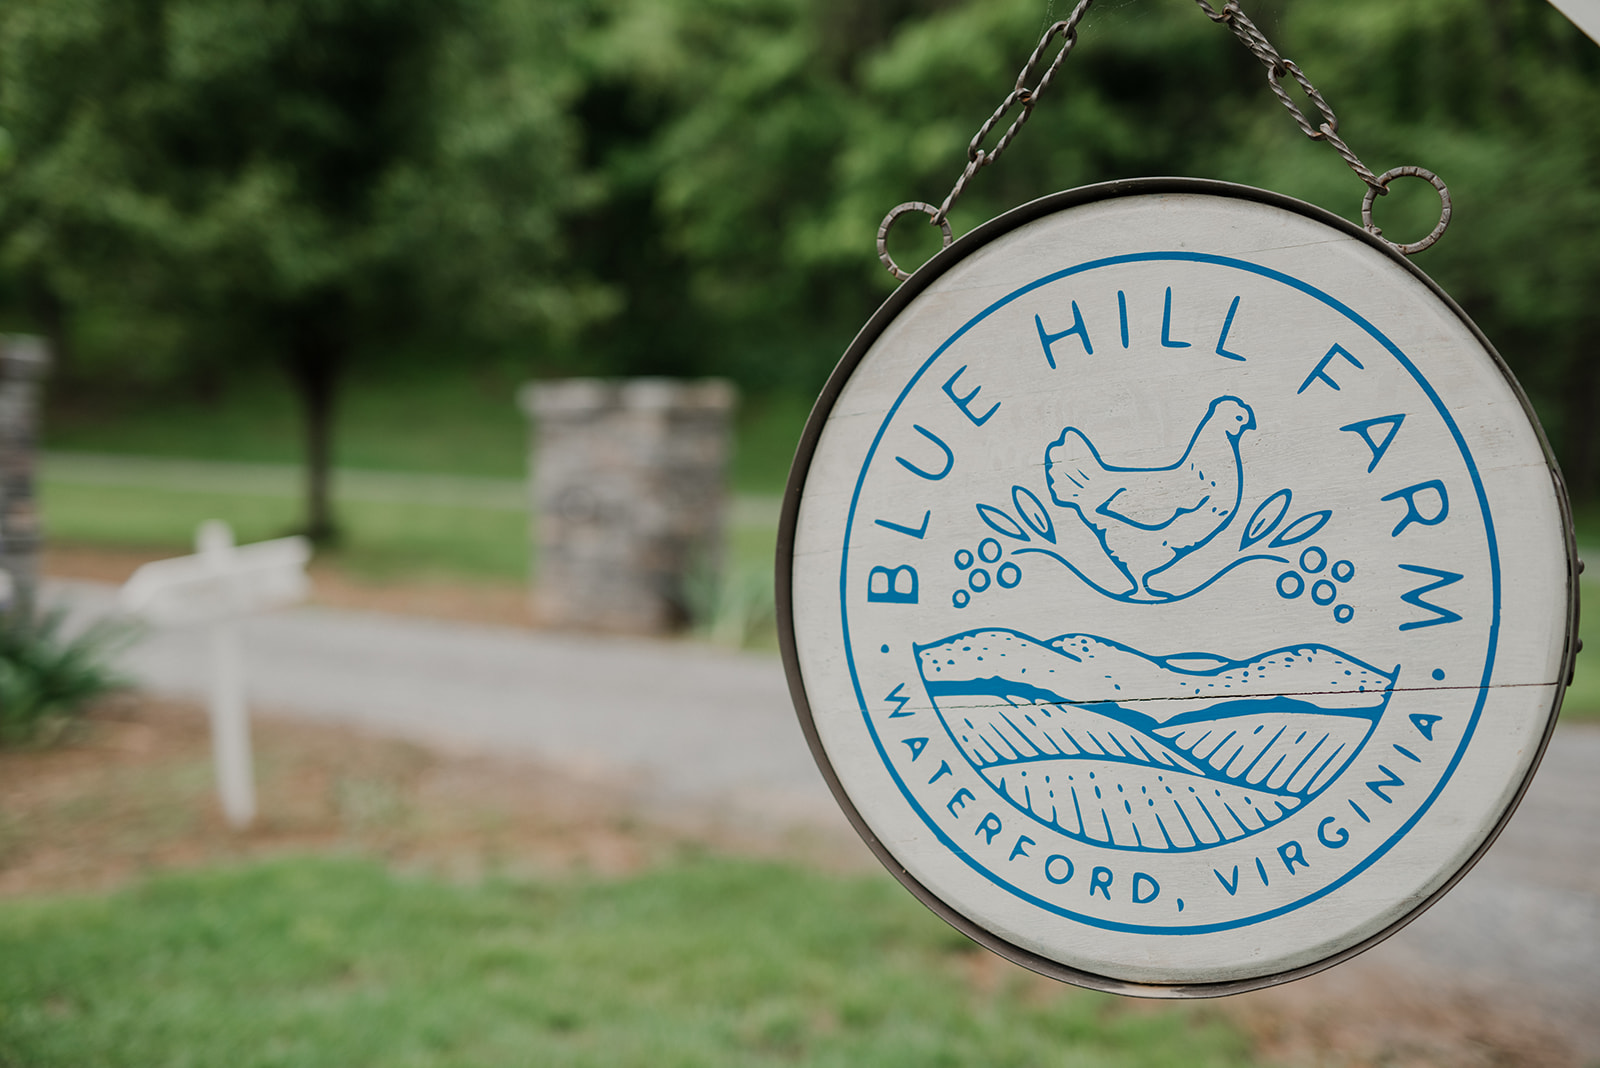 The sign for Blue Hill Farm in Waterford, VA greets guests as they enter.